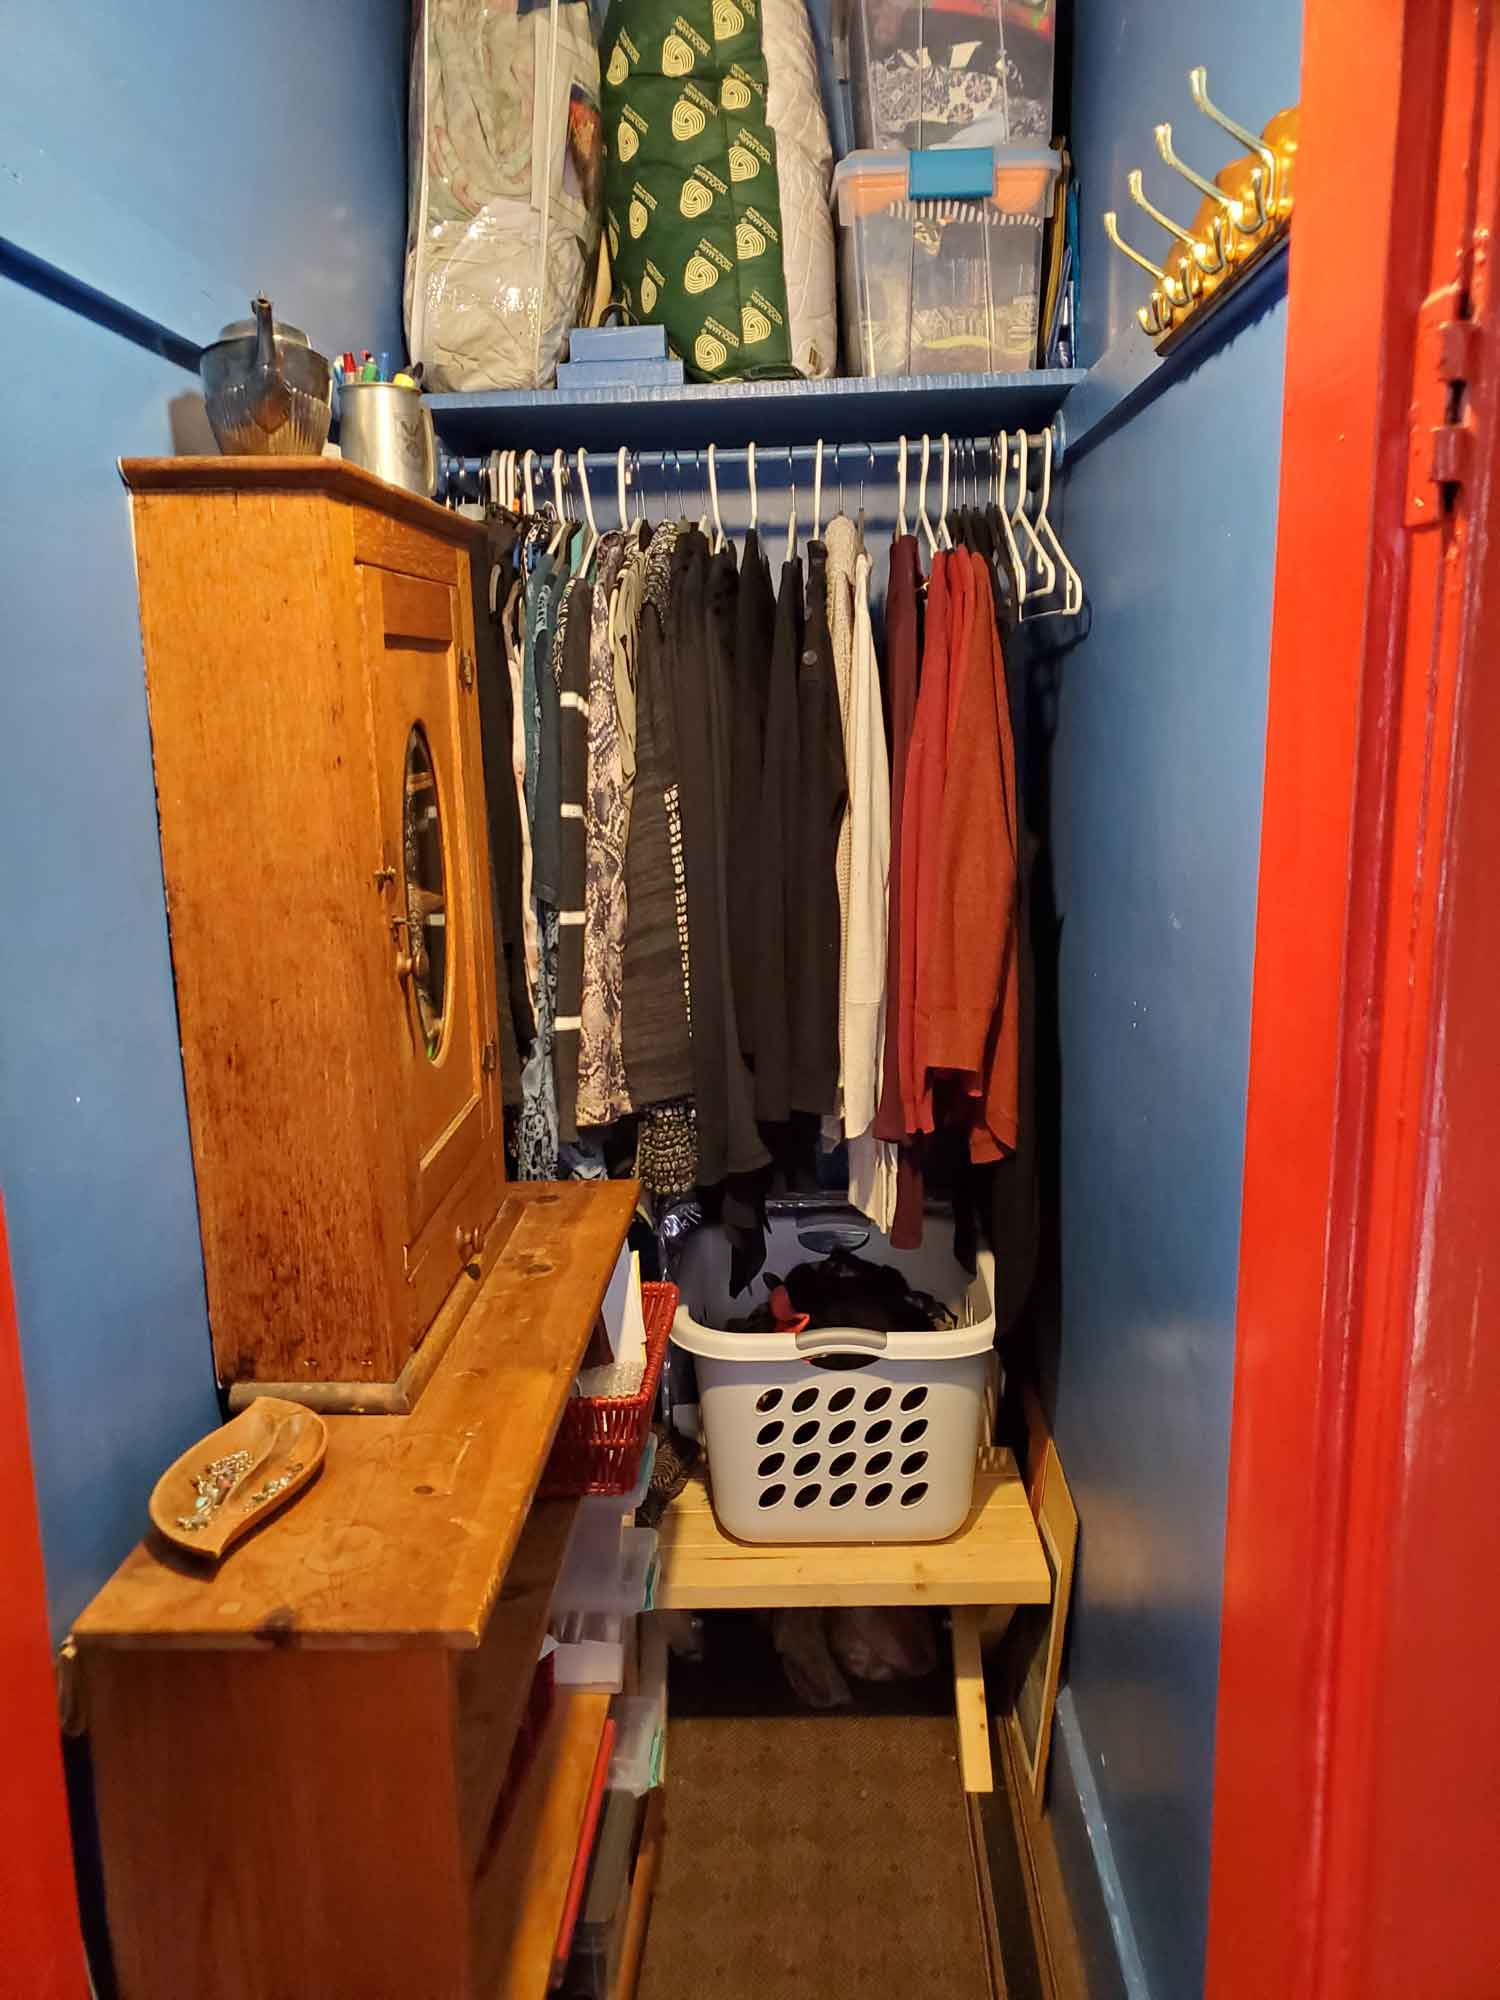 A better organized closet with shelving and cabinet added on the left